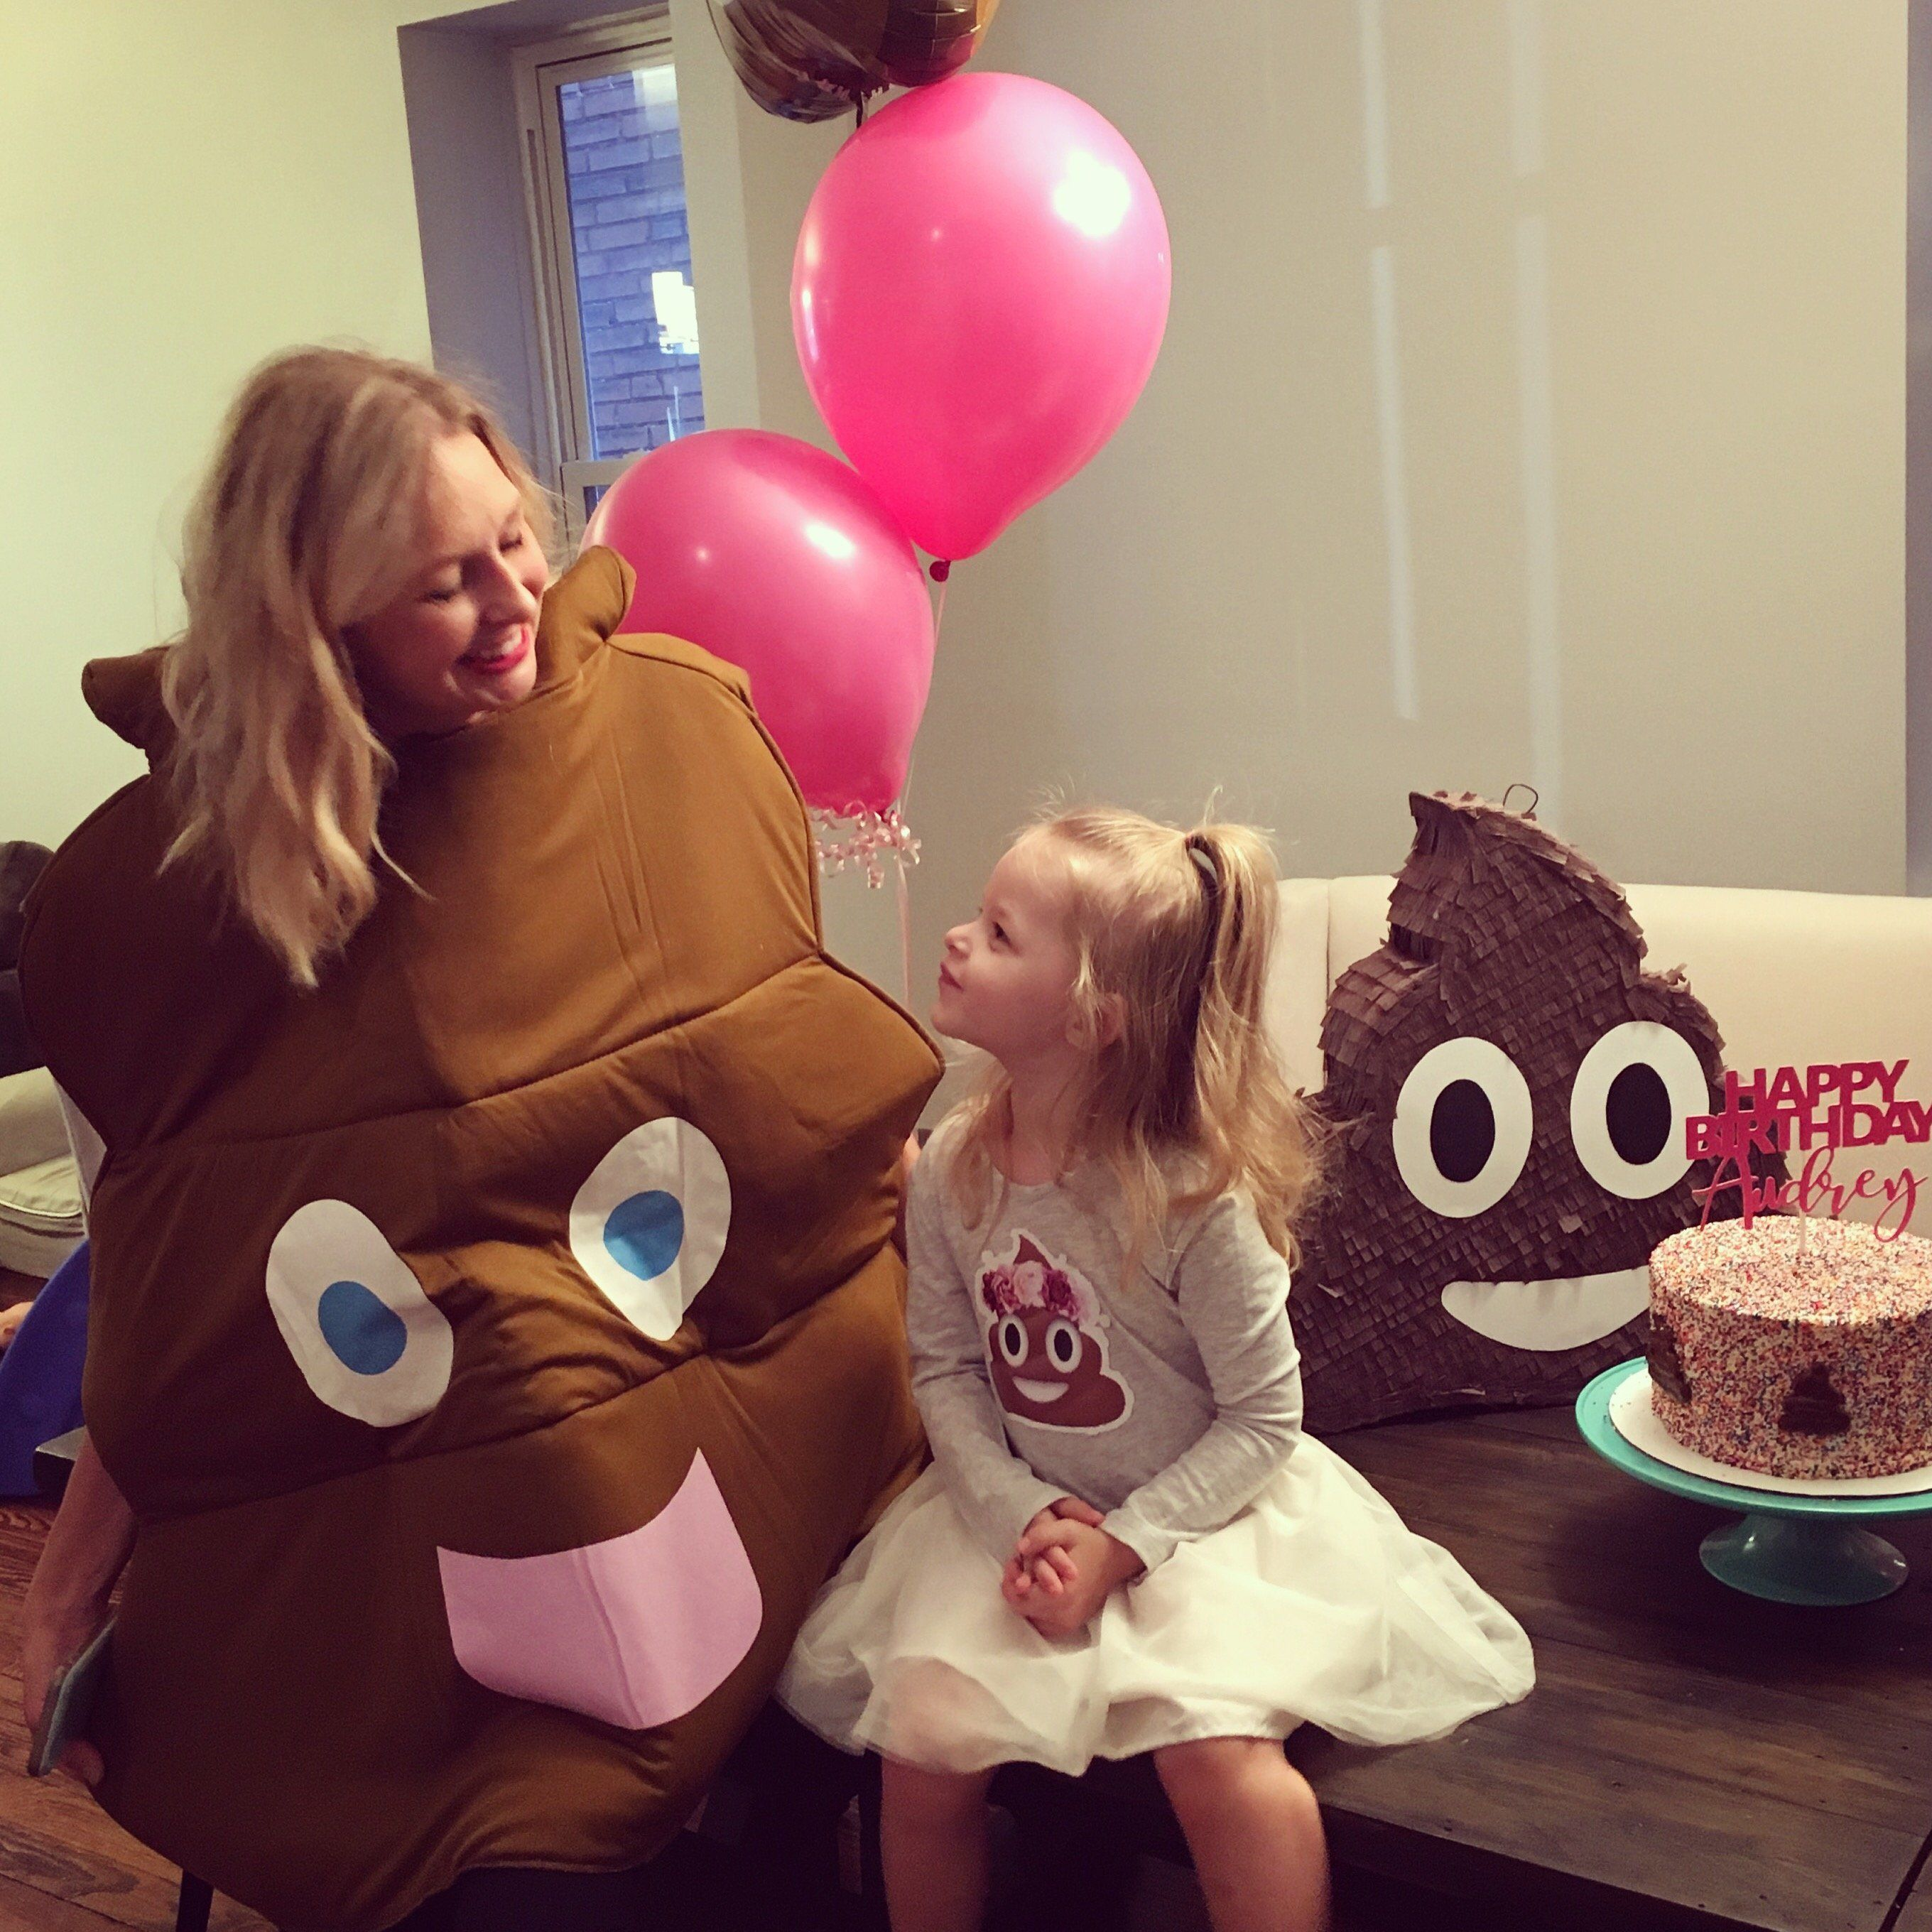 """I tried suggesting other themes, but she always insisted on poop,"" Audrey's mom said."